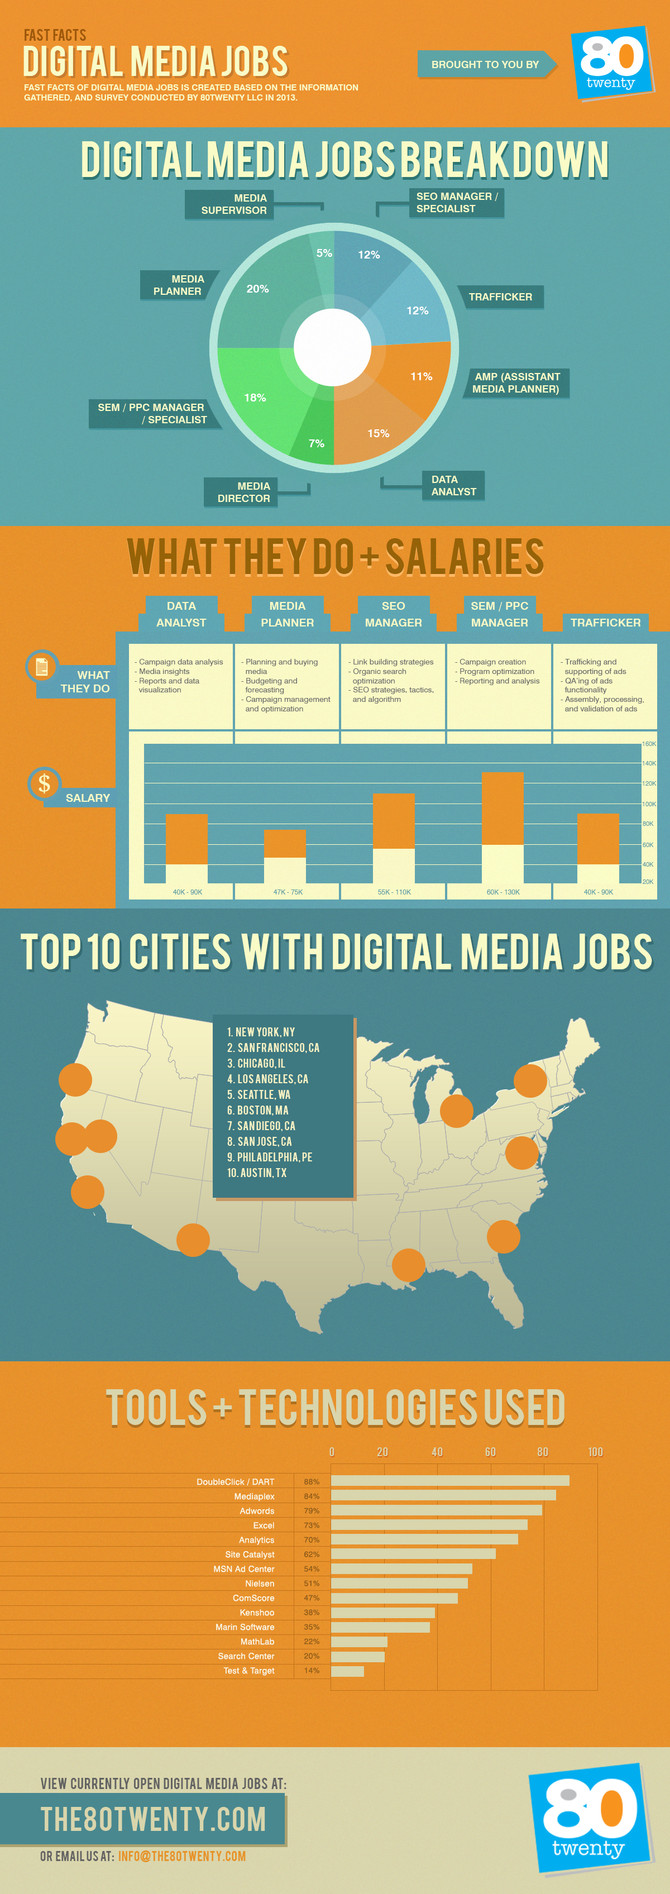 FAST FACTS OF DIGITAL MEDIA JOBS